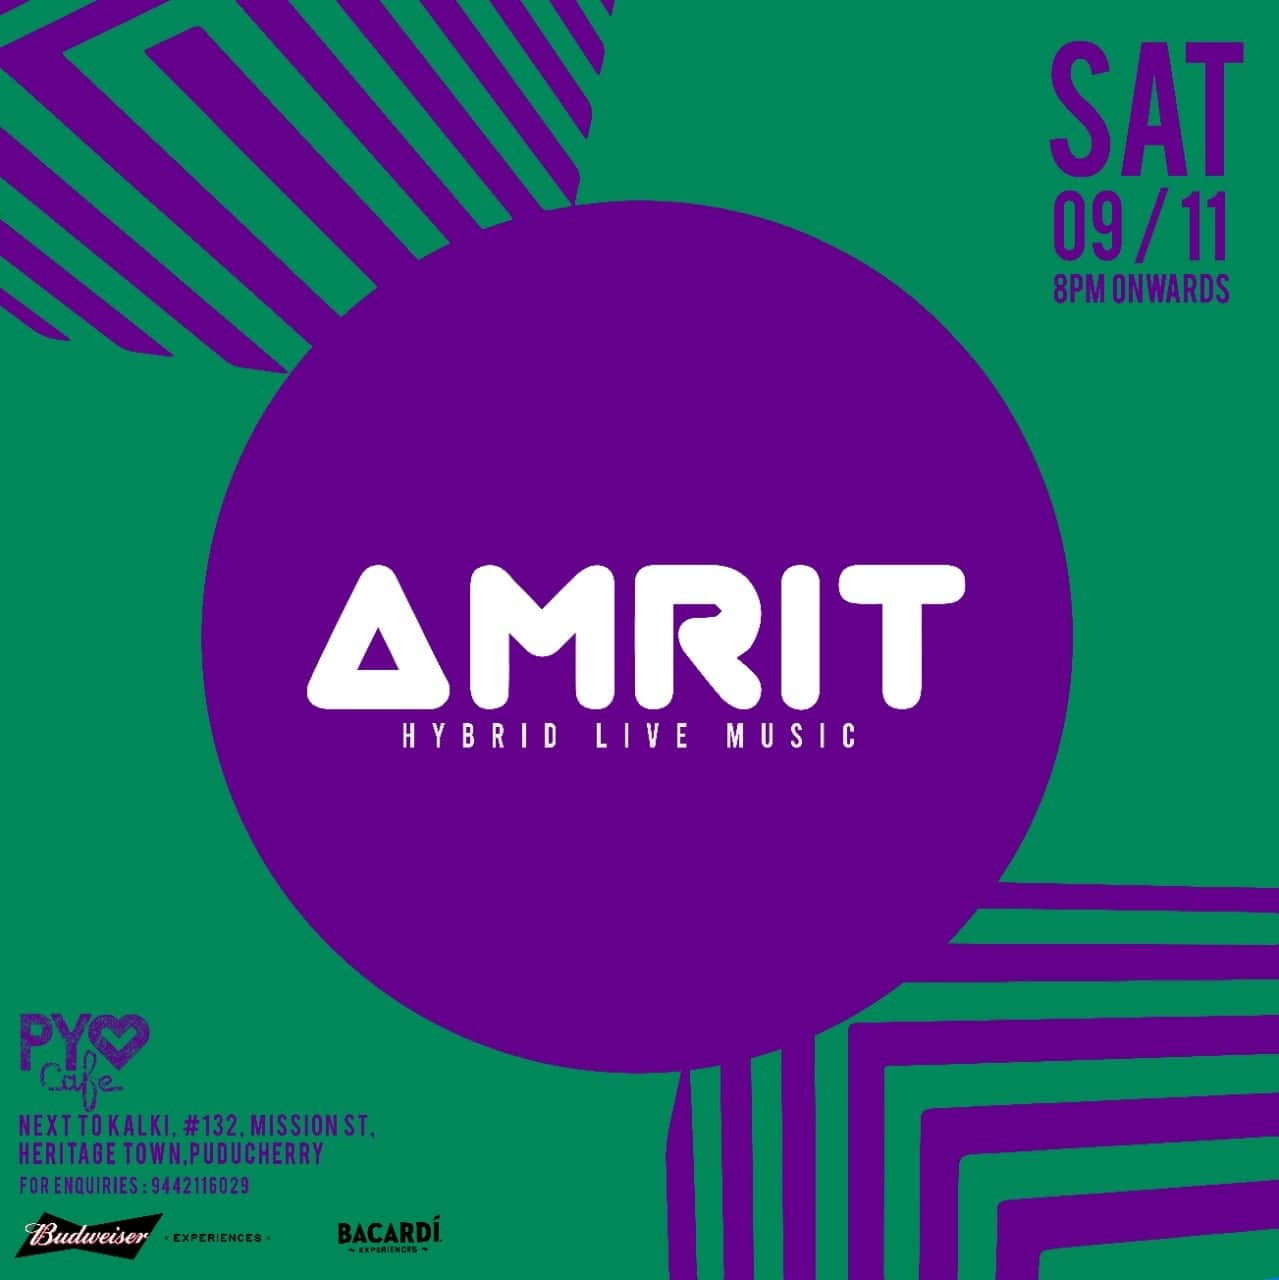 AMRIT Hybrid Live Music at PY Cafe.